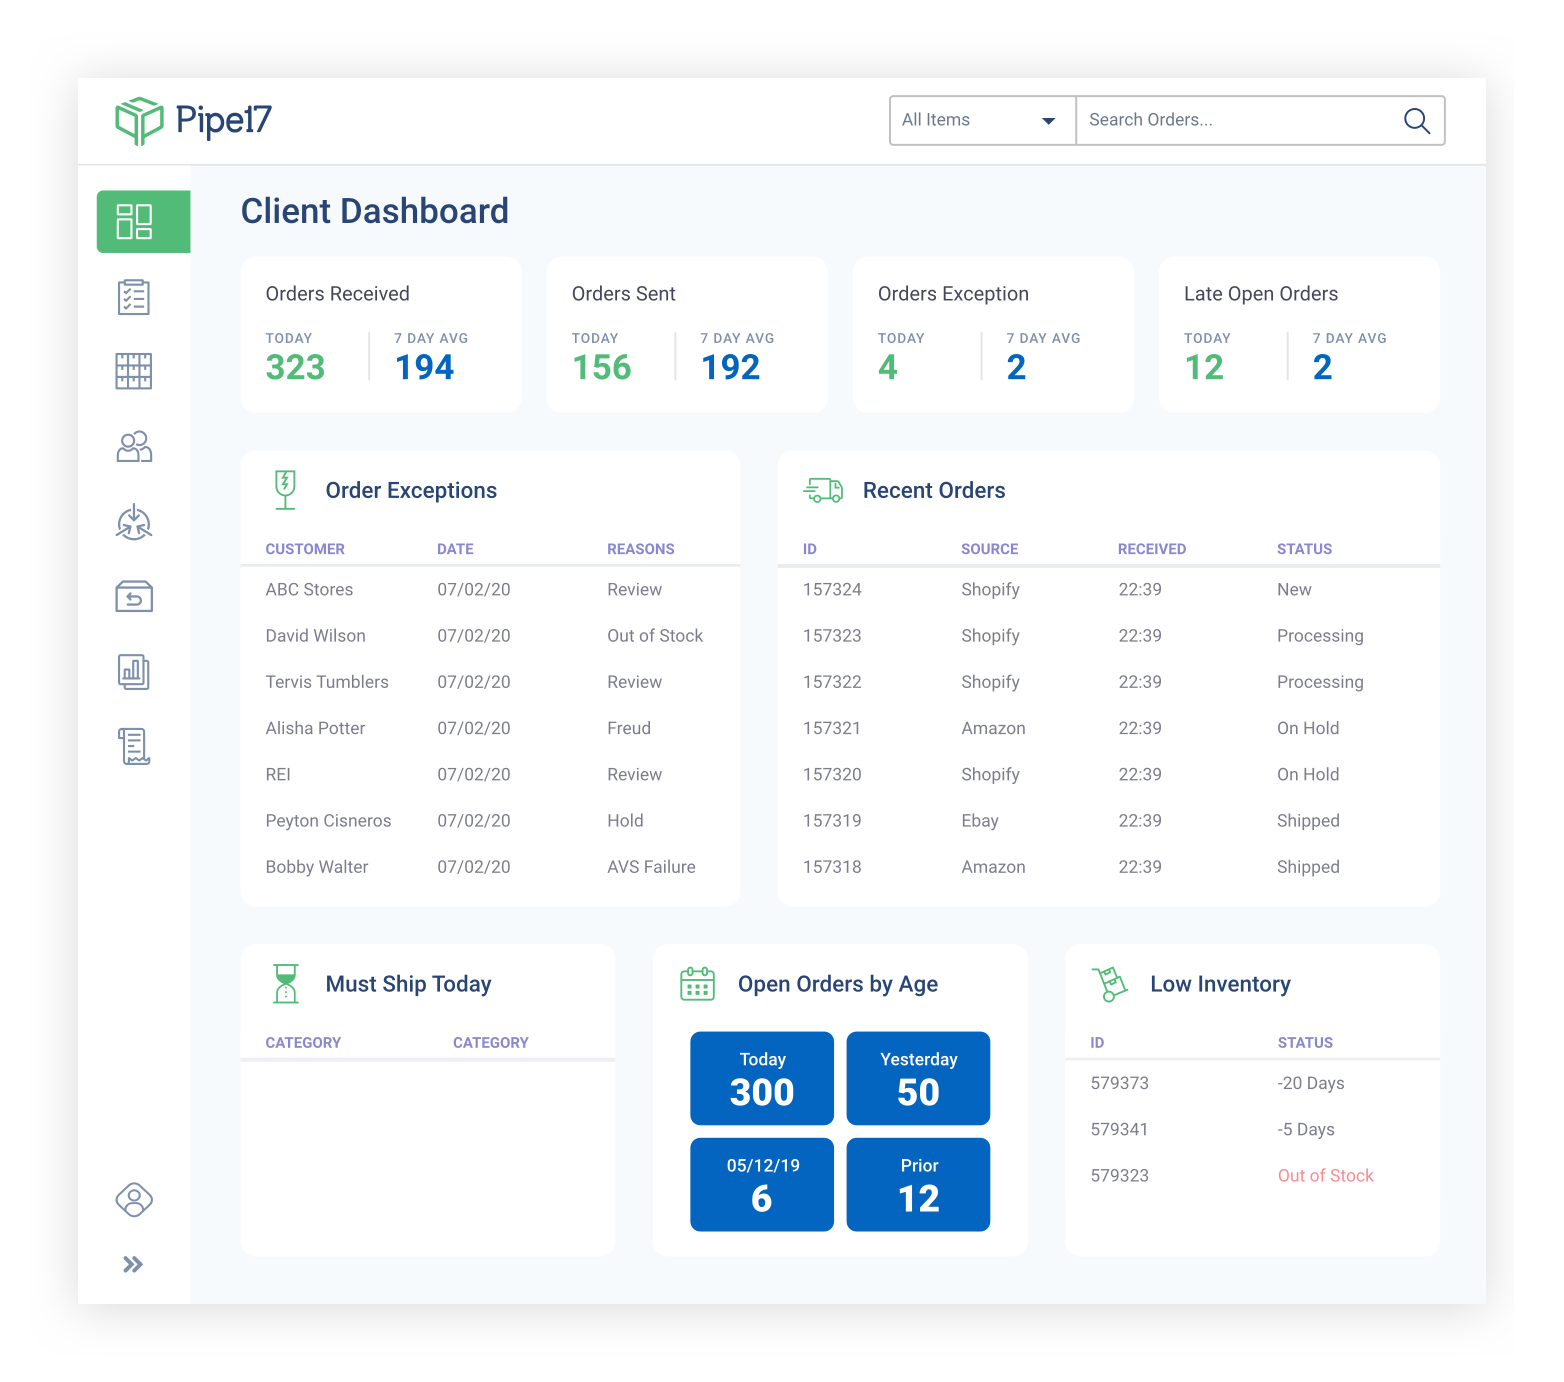 Pipe17 client dashboard